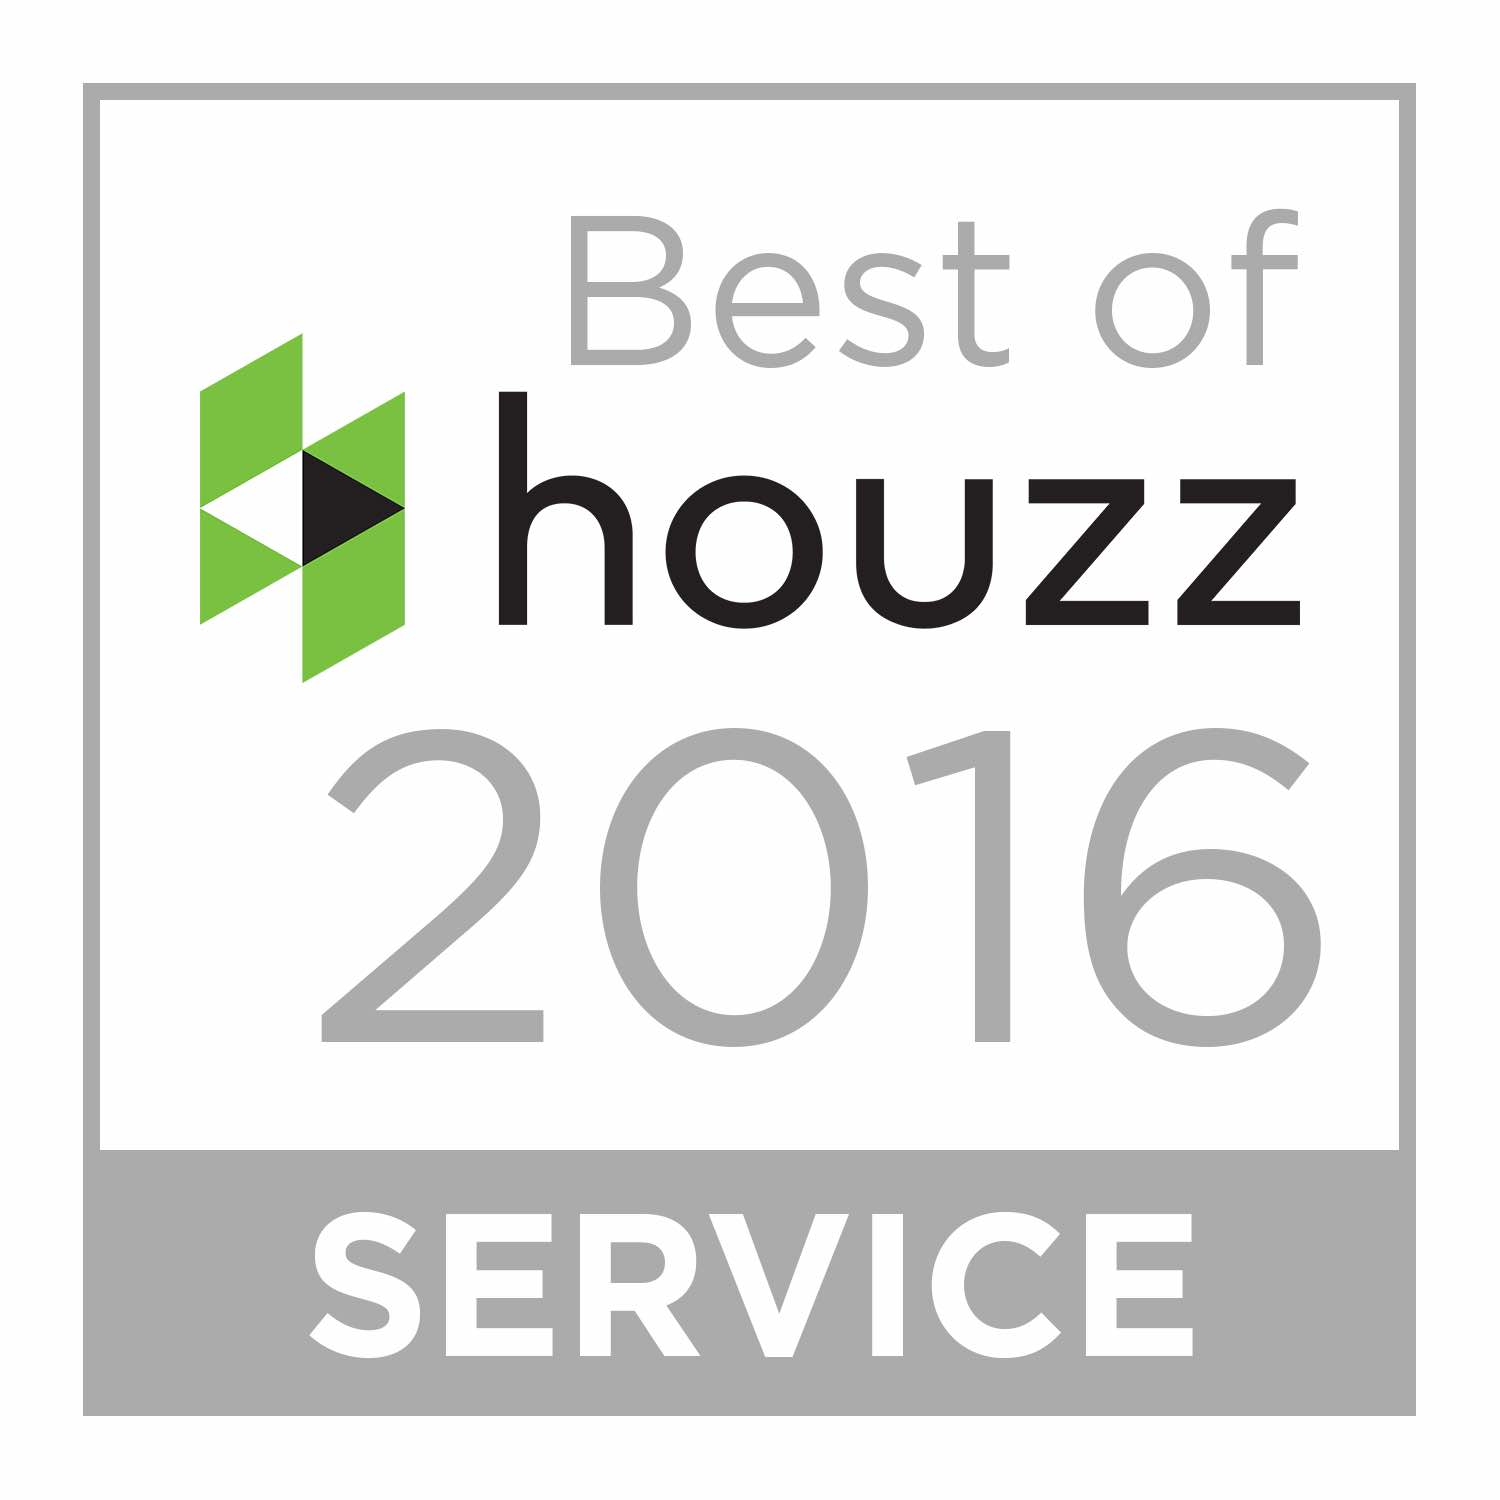 Wine Cellar Specialists win Best of Houzz in 2016 for Service